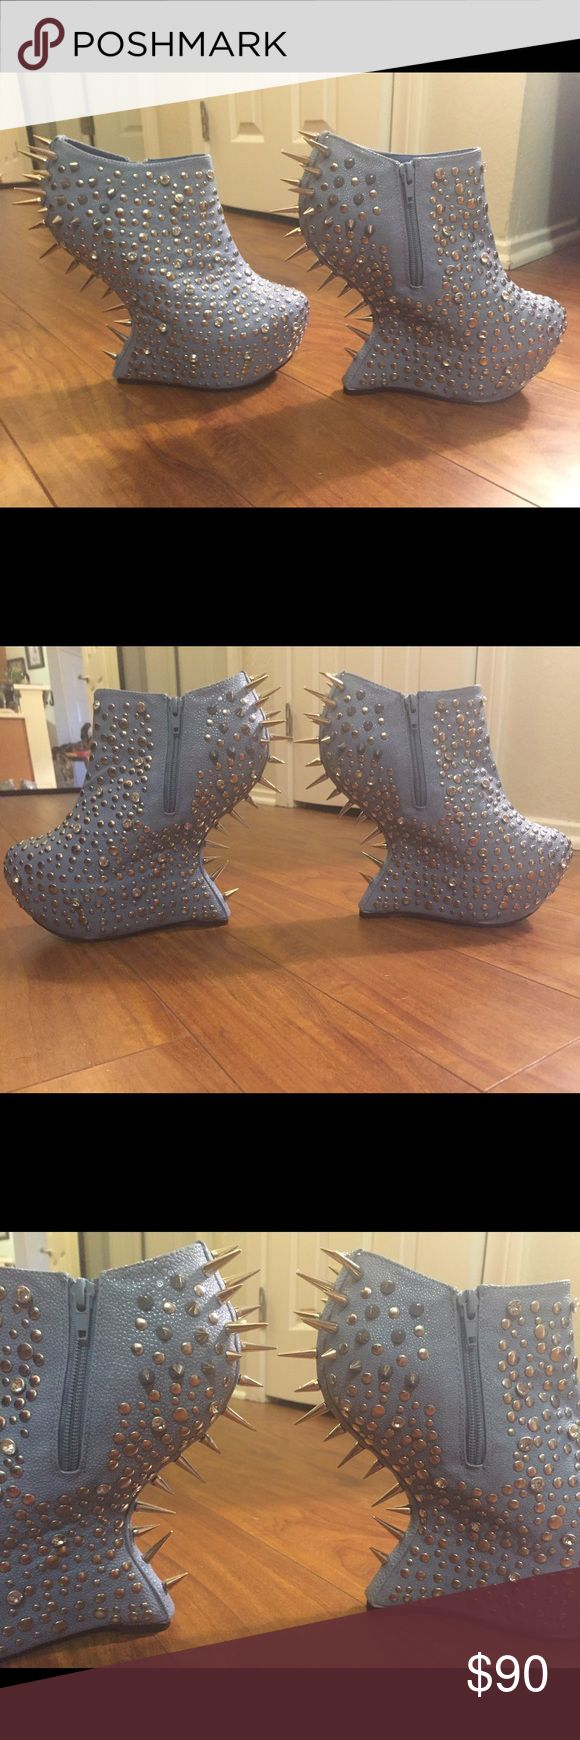 Lady Gaga style studded rockstar booties Perfect for little monsters 😘 Zipper booties with fierce spikes rhinestones and studs all over, never worn only tried on the box is too big to ship in standard usps boxes unfortunately Priviliged Shoes Ankle Boots & Booties